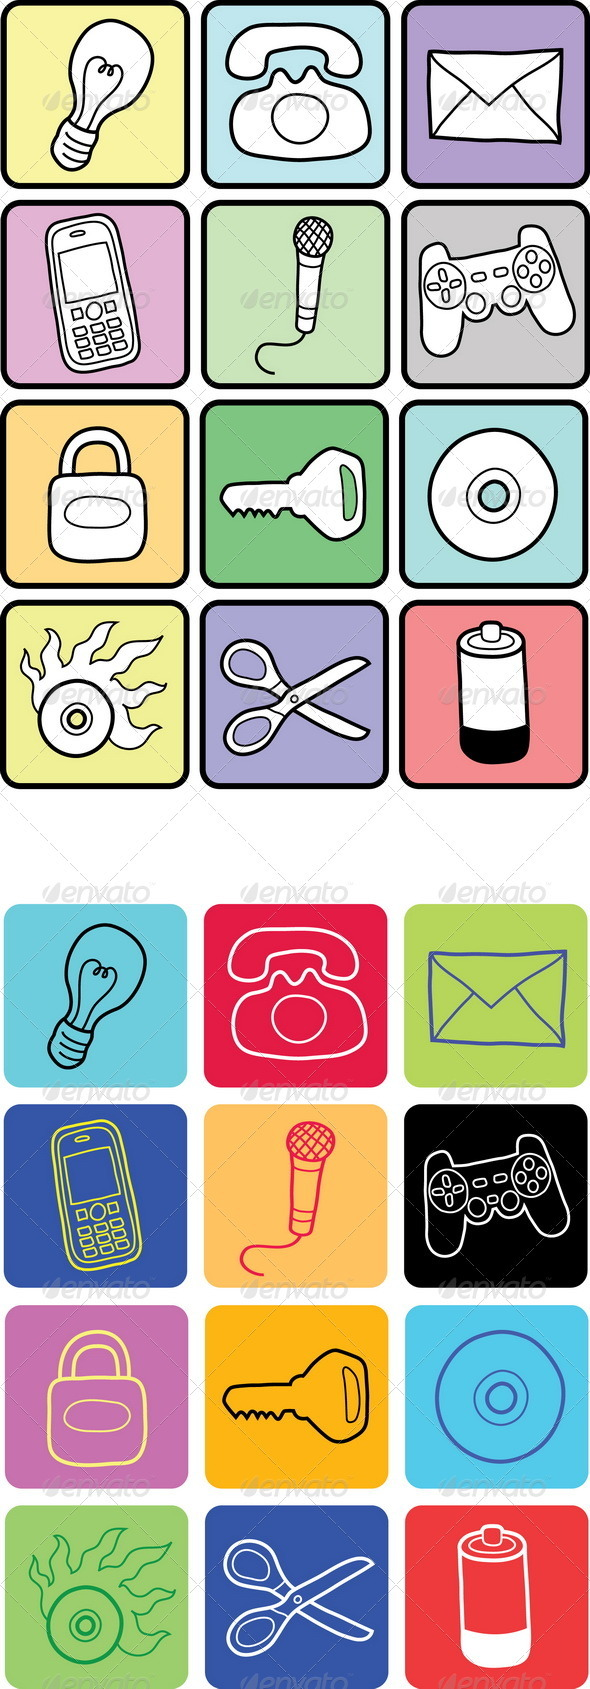 12 Hand Drawn Vector Icons  - Concepts Business